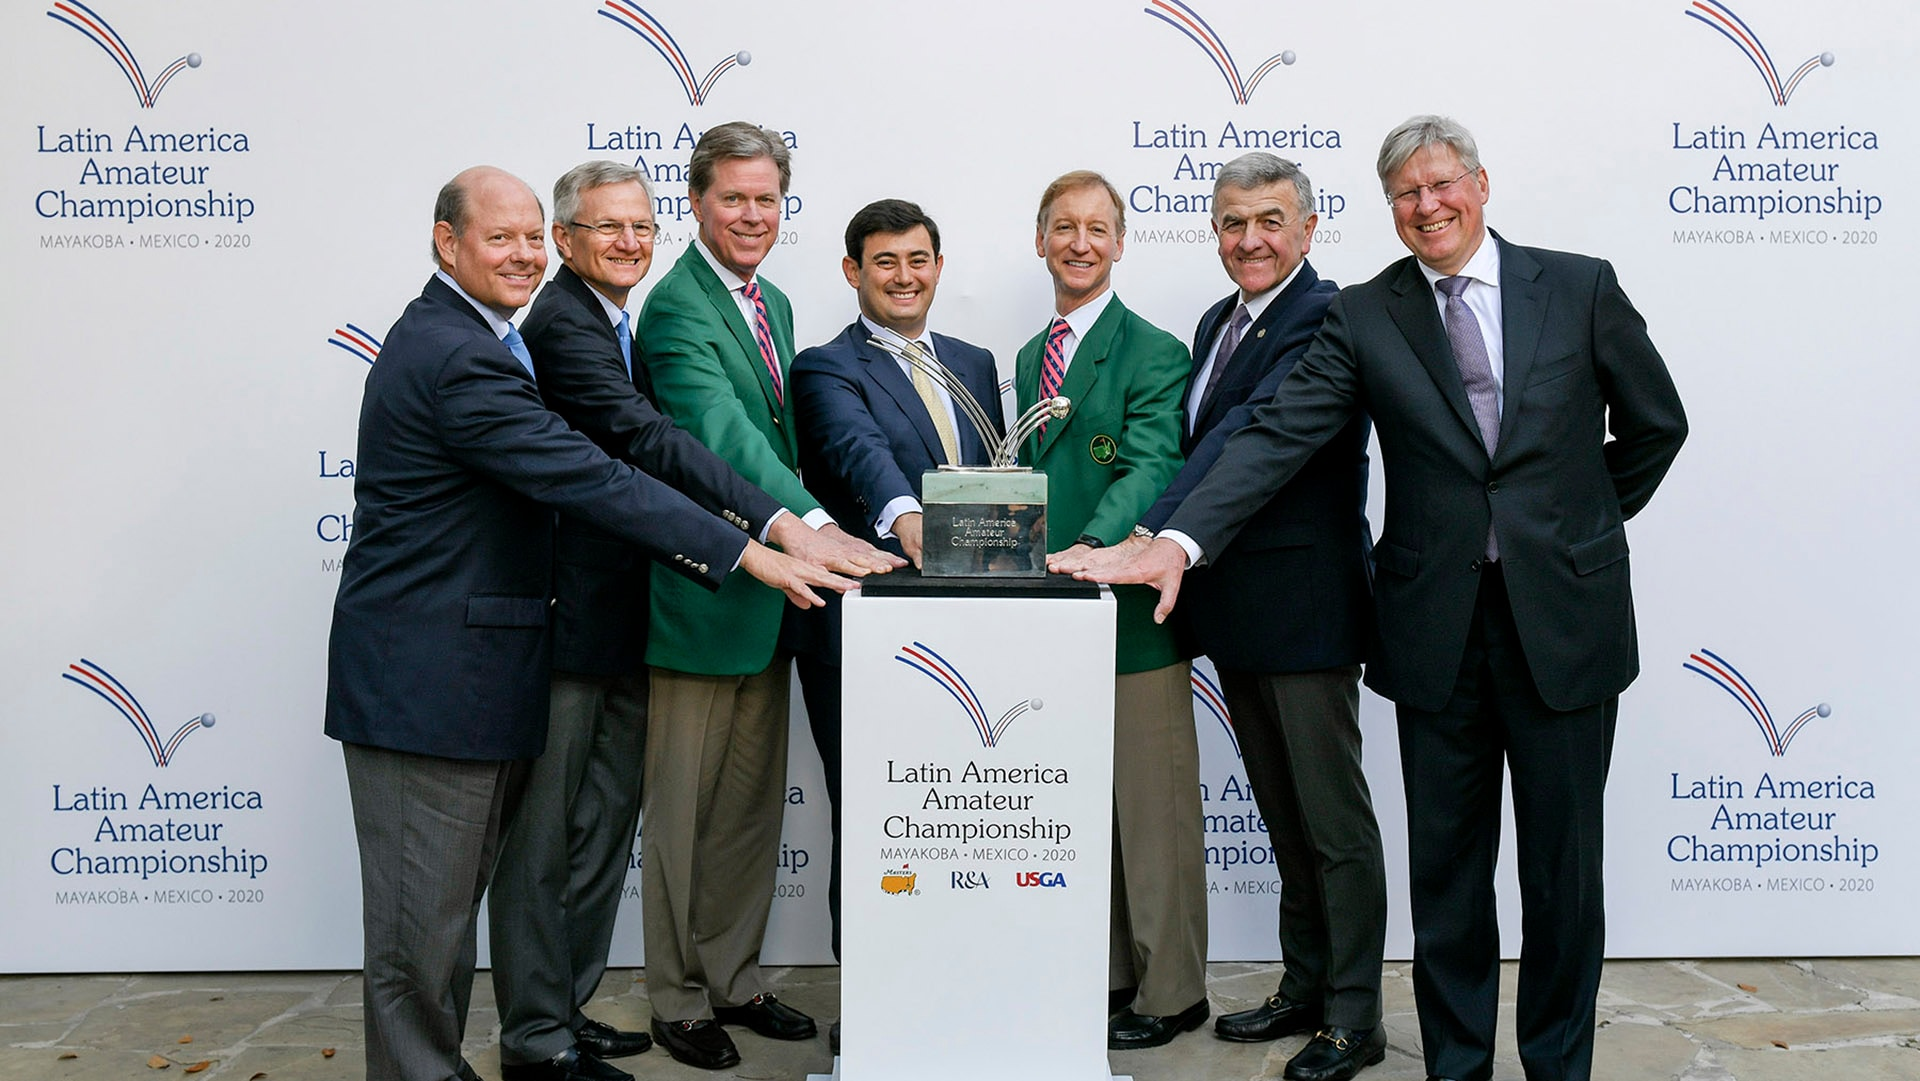 2020 Latin America Amateur Championship announcement